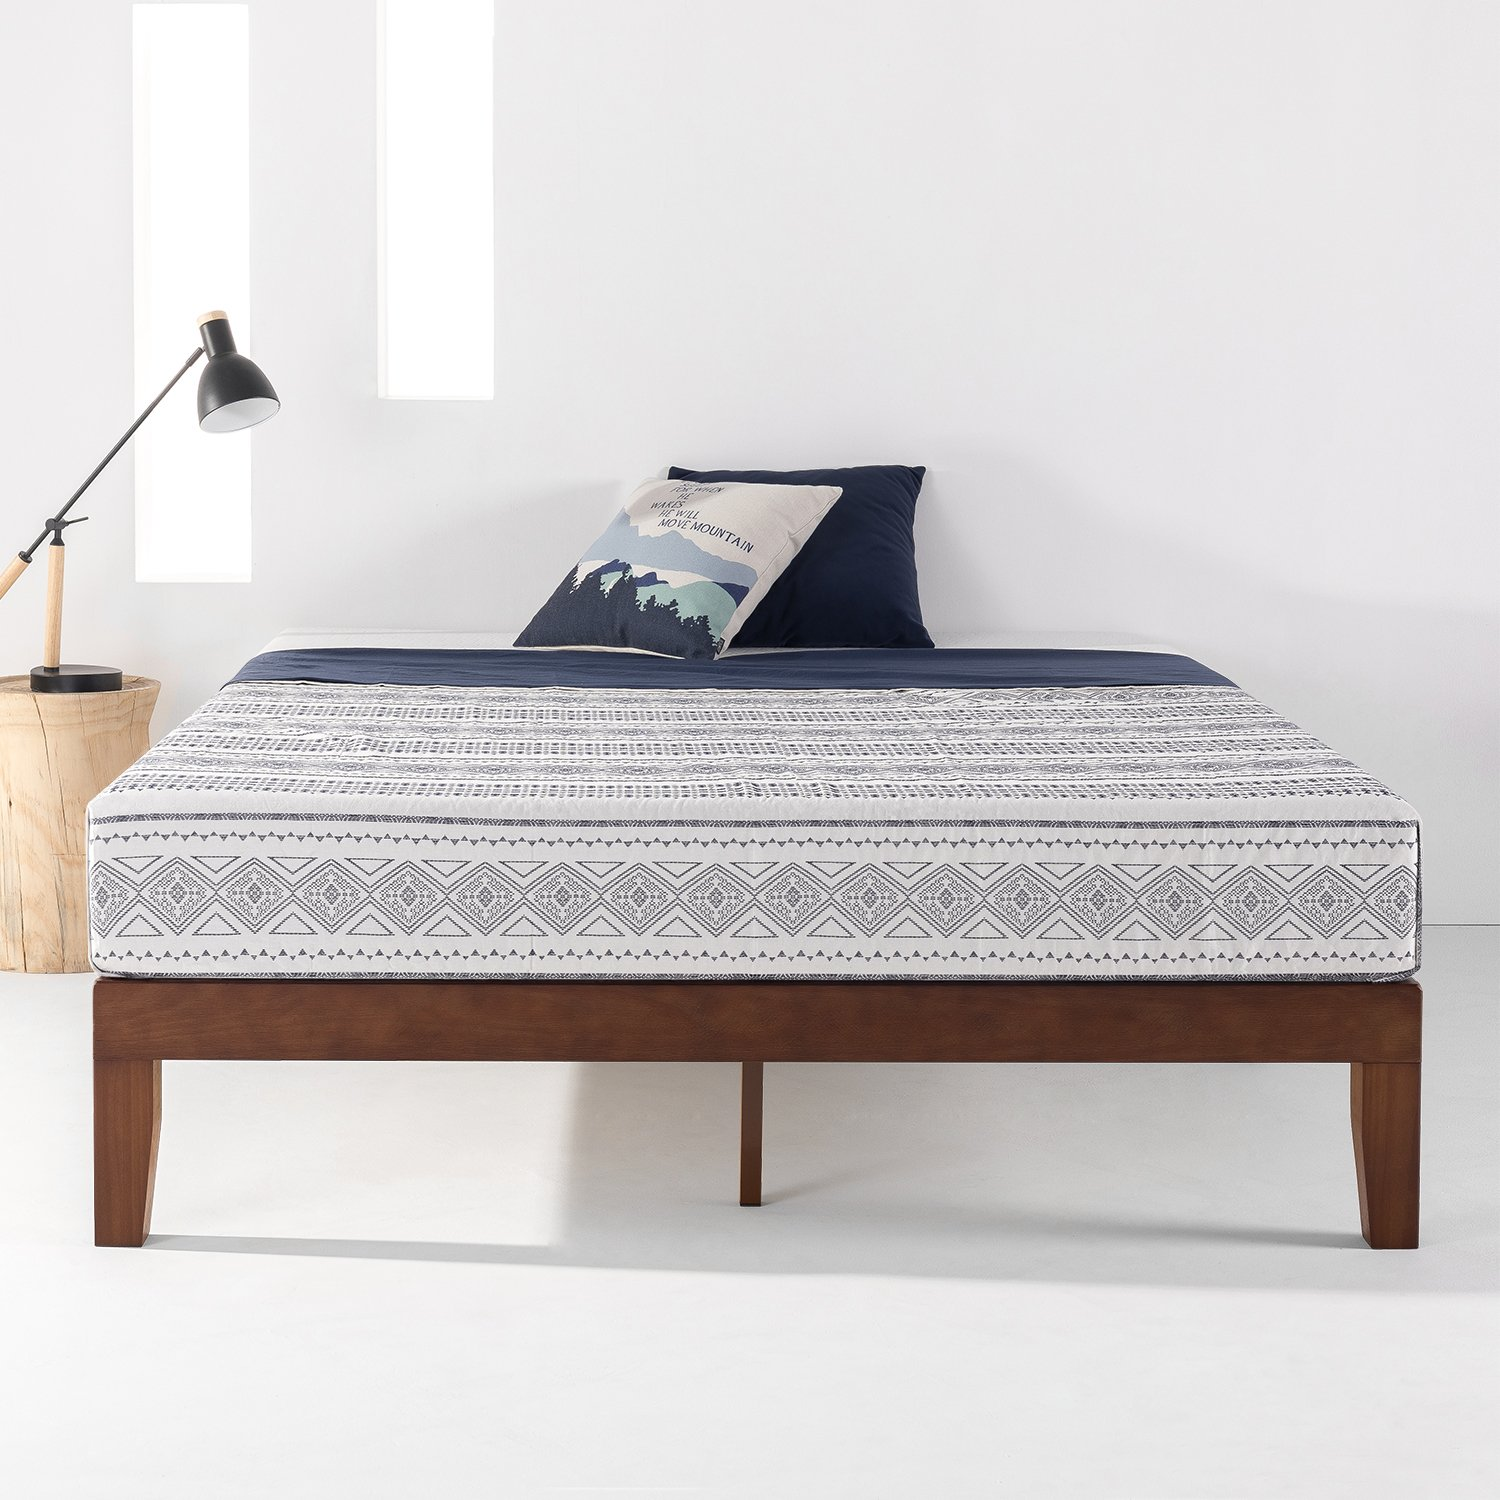 Mellow Full Bed Frame, 12'' Solid Wood Platform Bed Frame w/Classic Wooden Slat (No Box Spring Needed), Antique Espresso, Full Size by Mellow